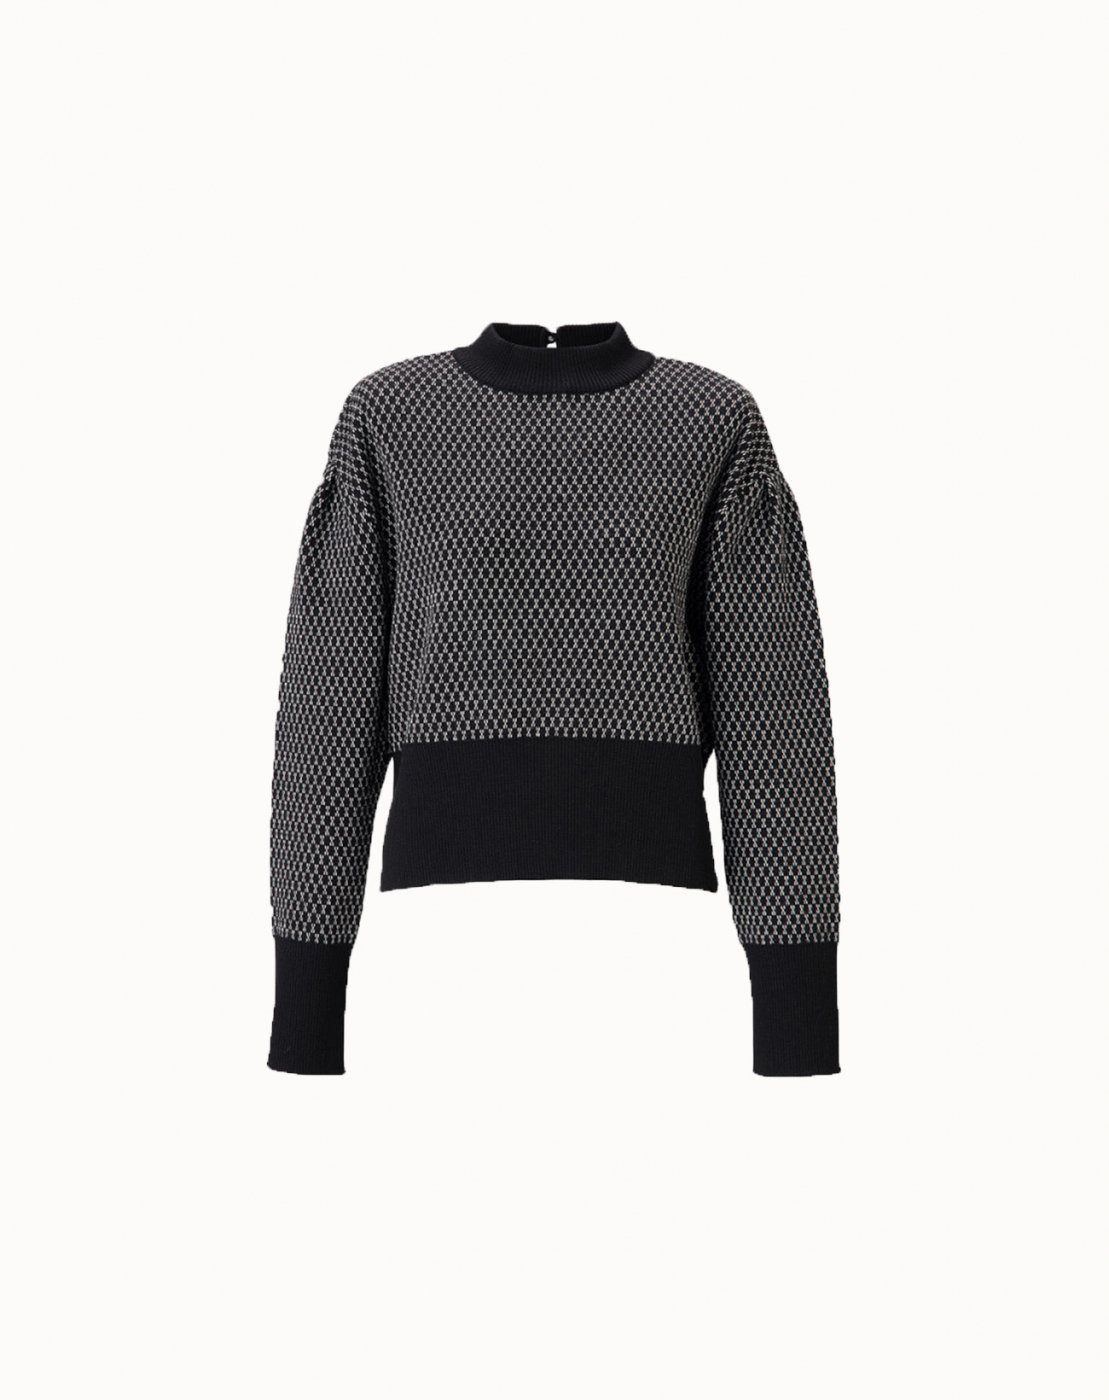 leur logette - Wool Jacquard Top - Black